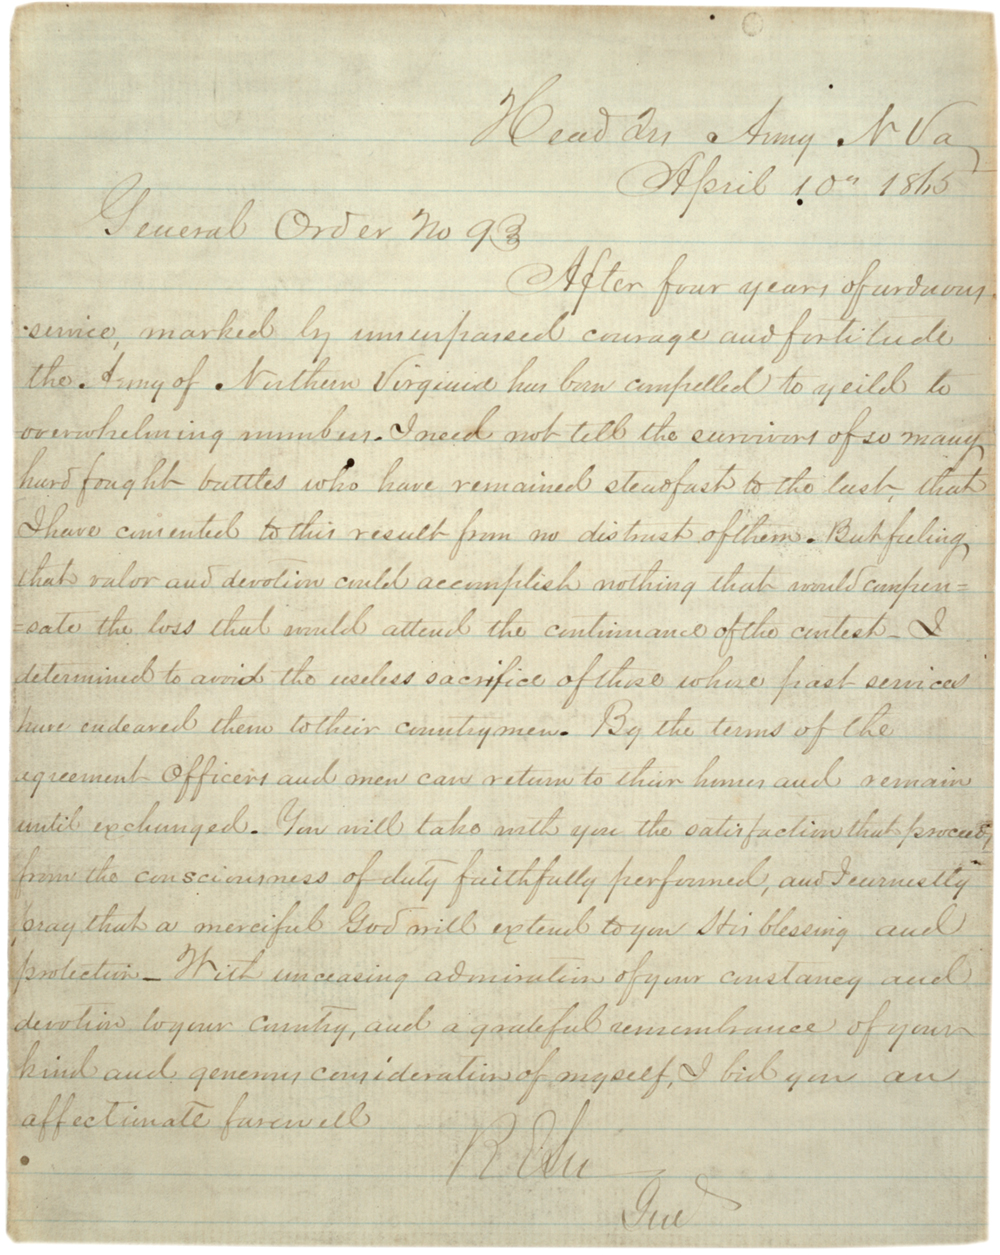 Robert E. Lee's General Order No. 9, April 10, 1865. (GLC00035)